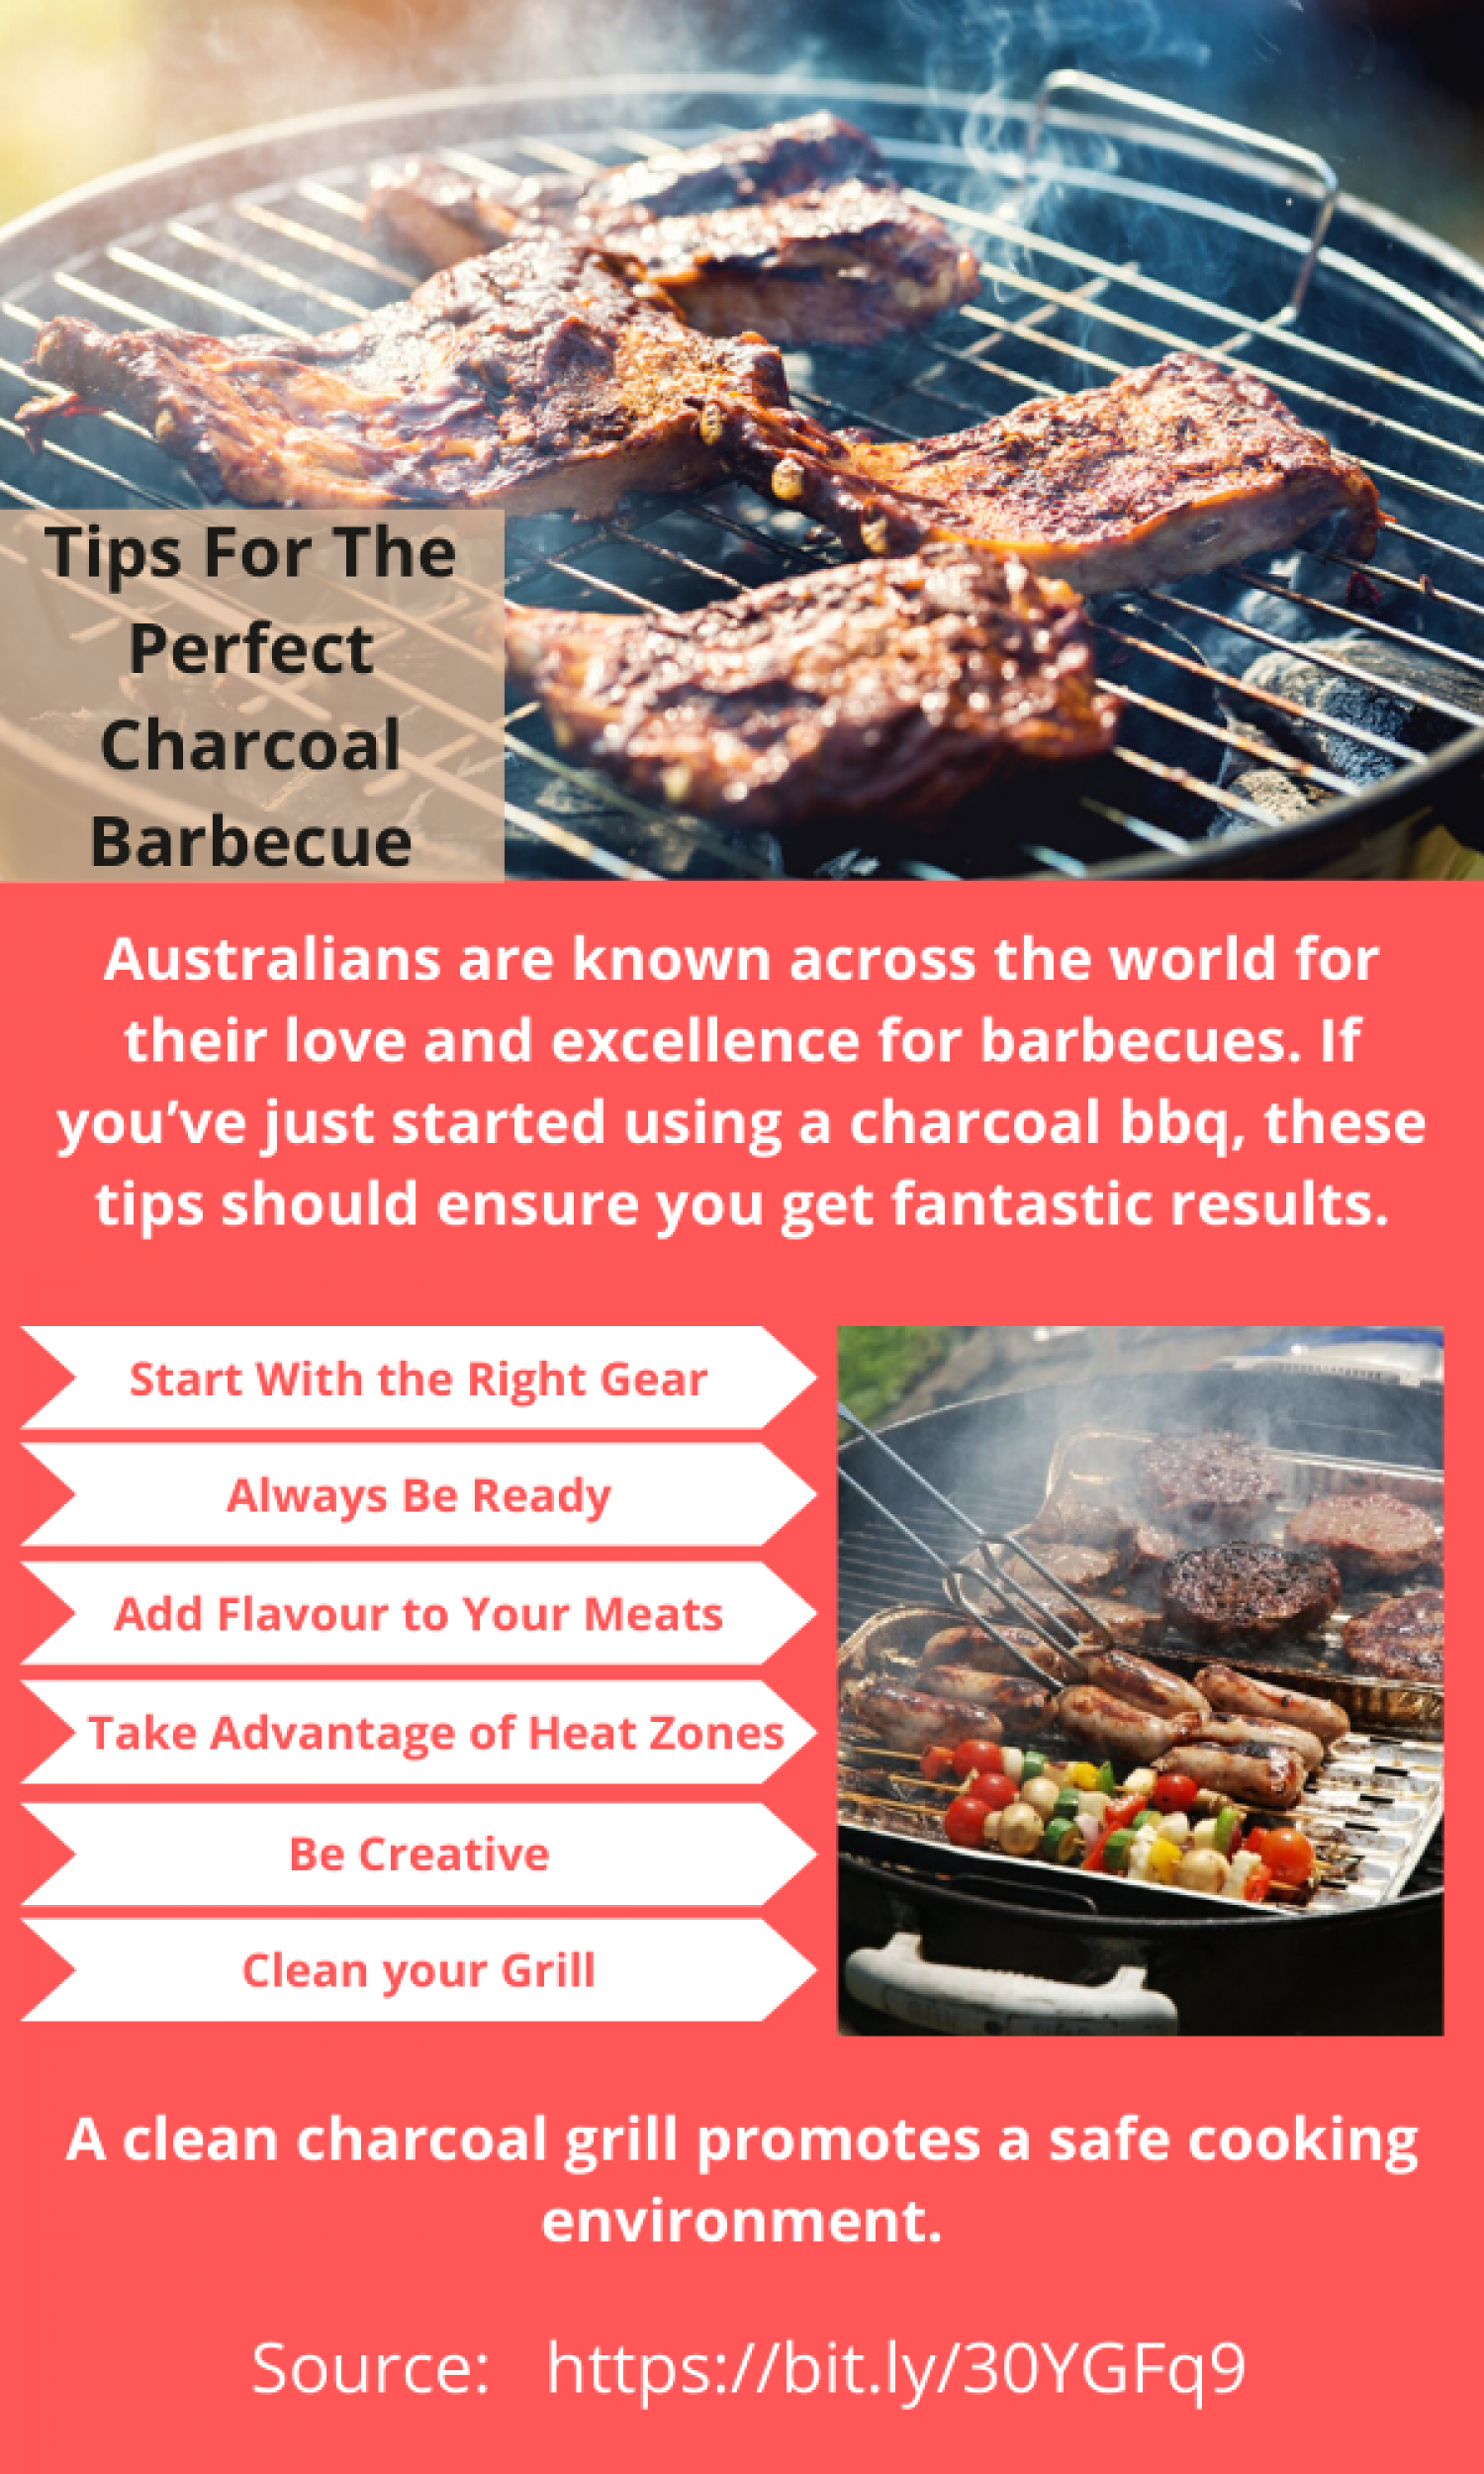 How to Use The Perfect Charcoal Barbecue Infographic